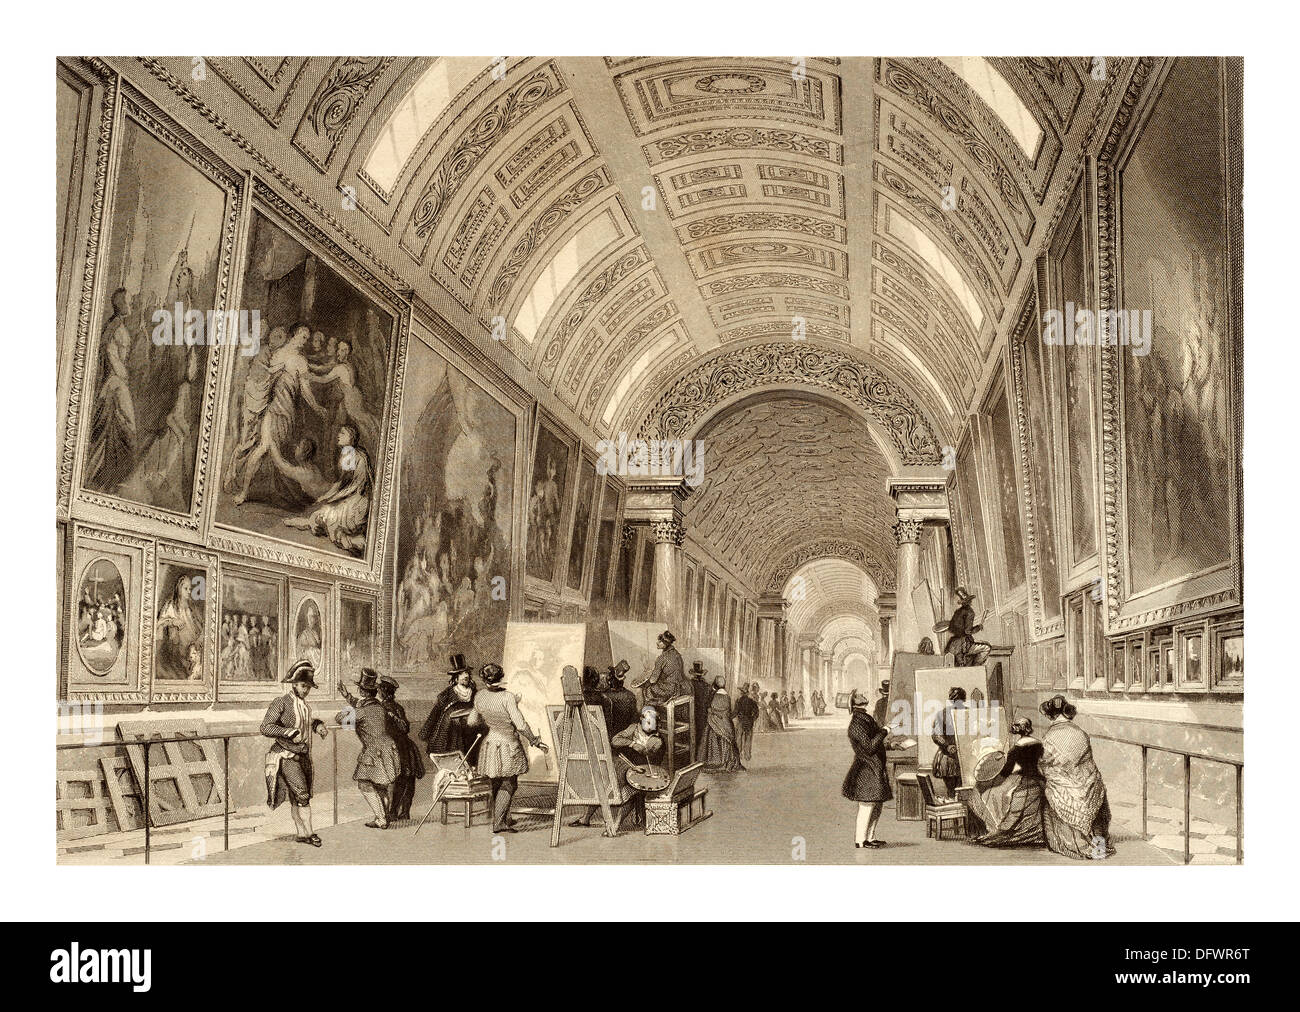 Illustration by Thomas Allom English architect and artist (13 March 1804 – 21 October 1872)  Grande Galerie Louvre Paris France - Stock Image